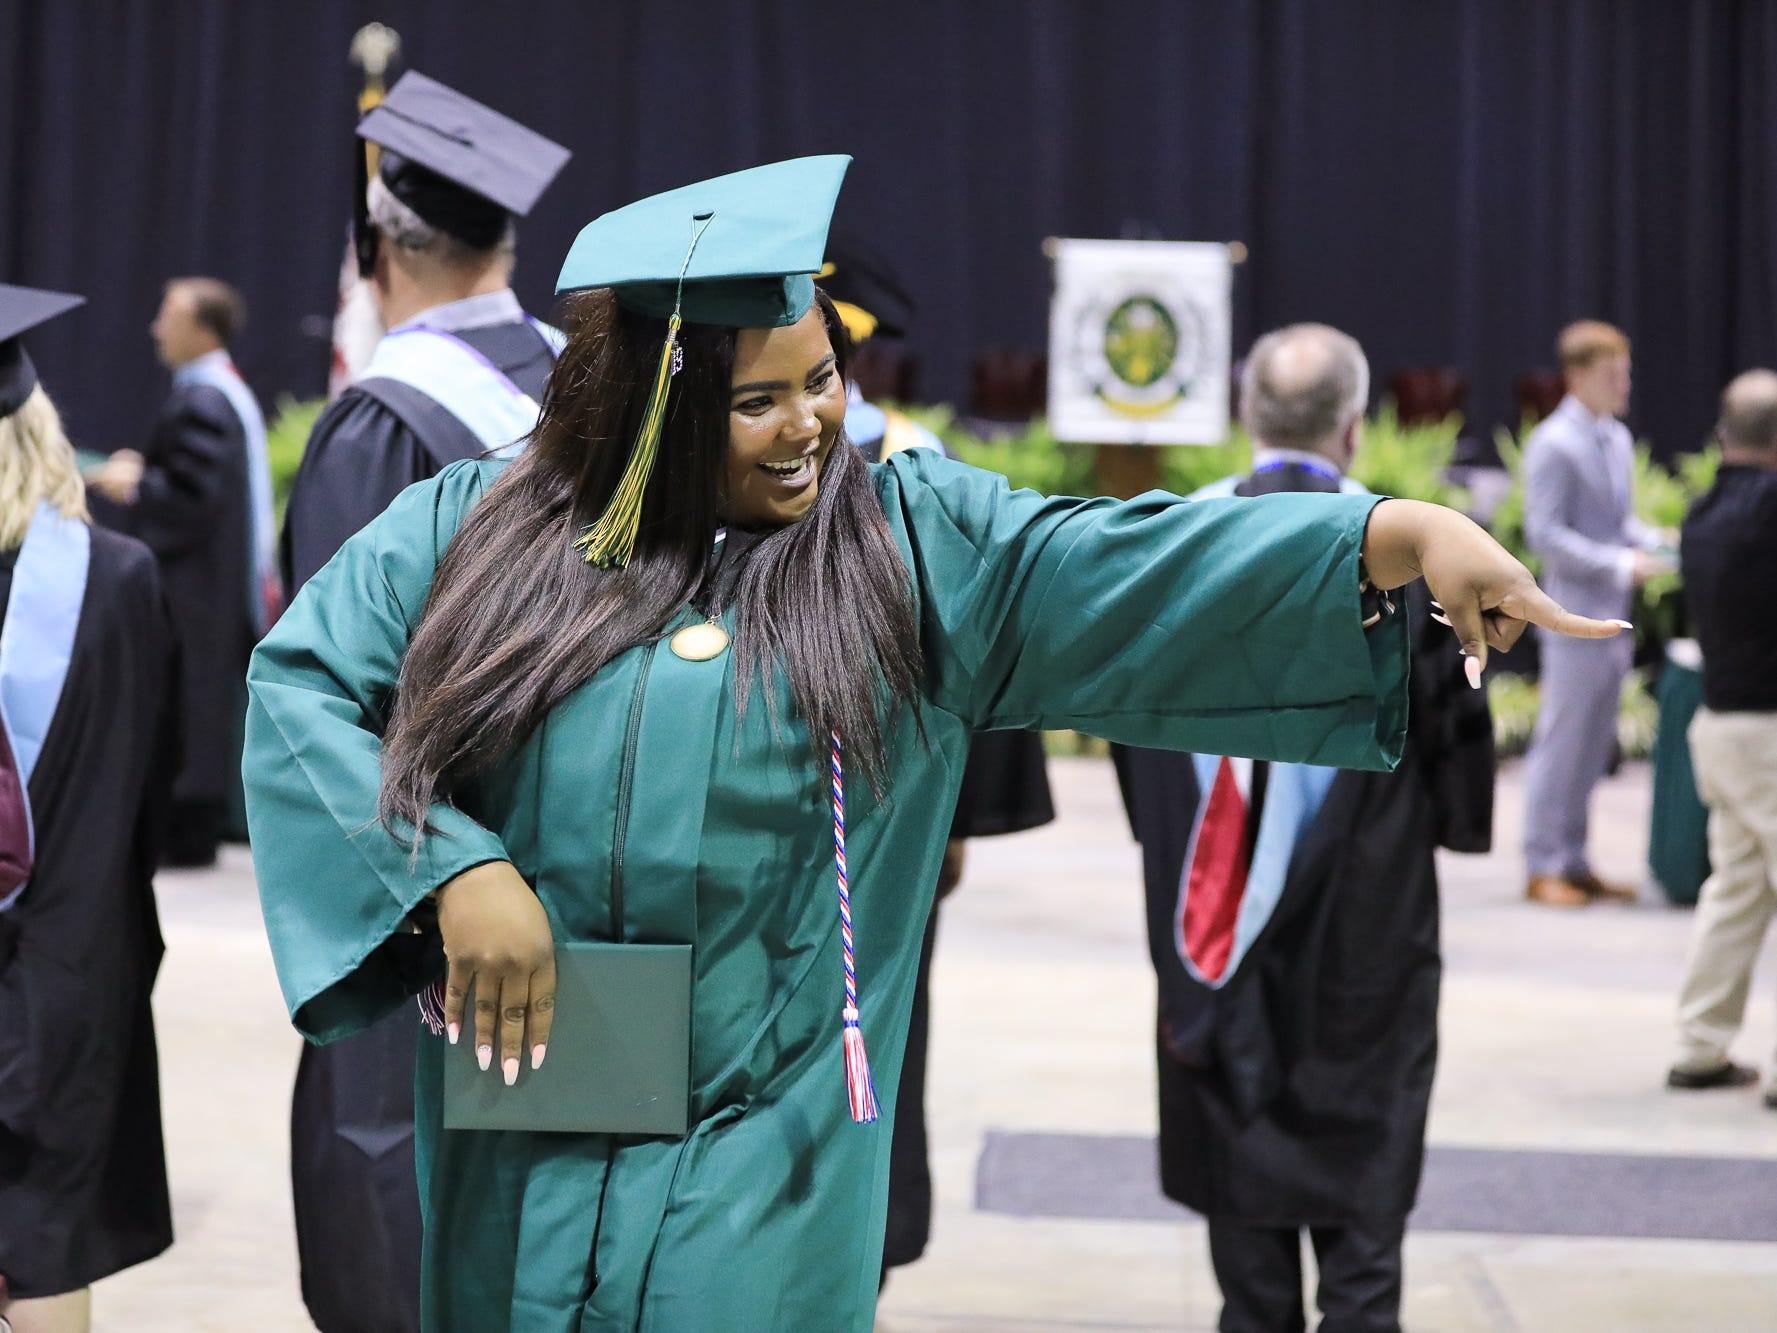 Parkview High School class of 2019 graduation ceremonies took places at JQH Thursday, May 9. 2019.